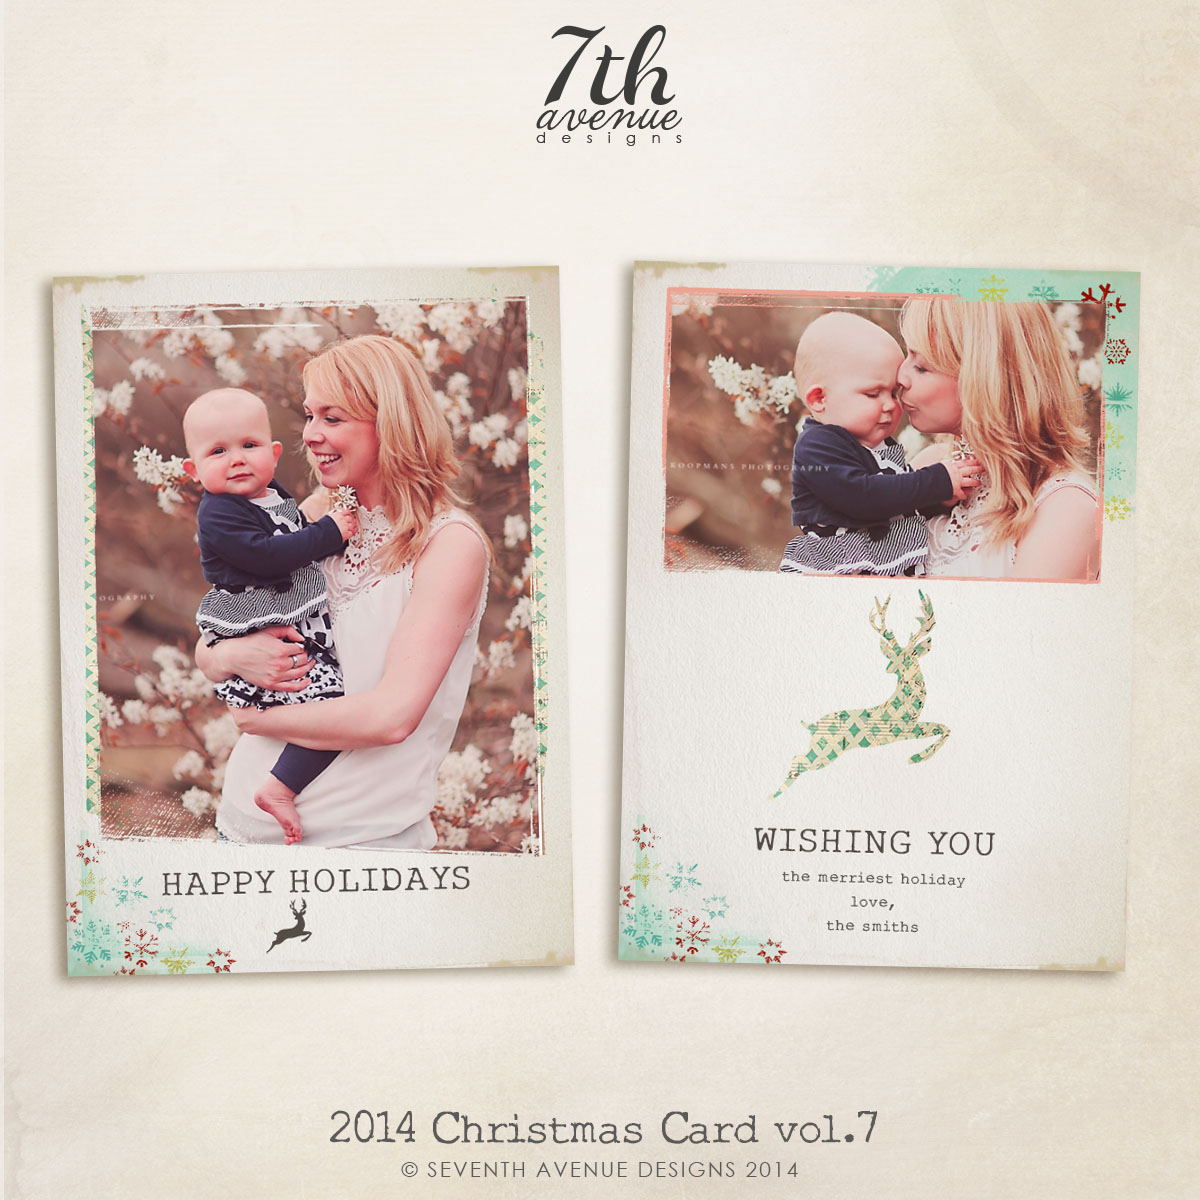 2014 Christmas Card Templates vol.7 -- 7x5 inch card template